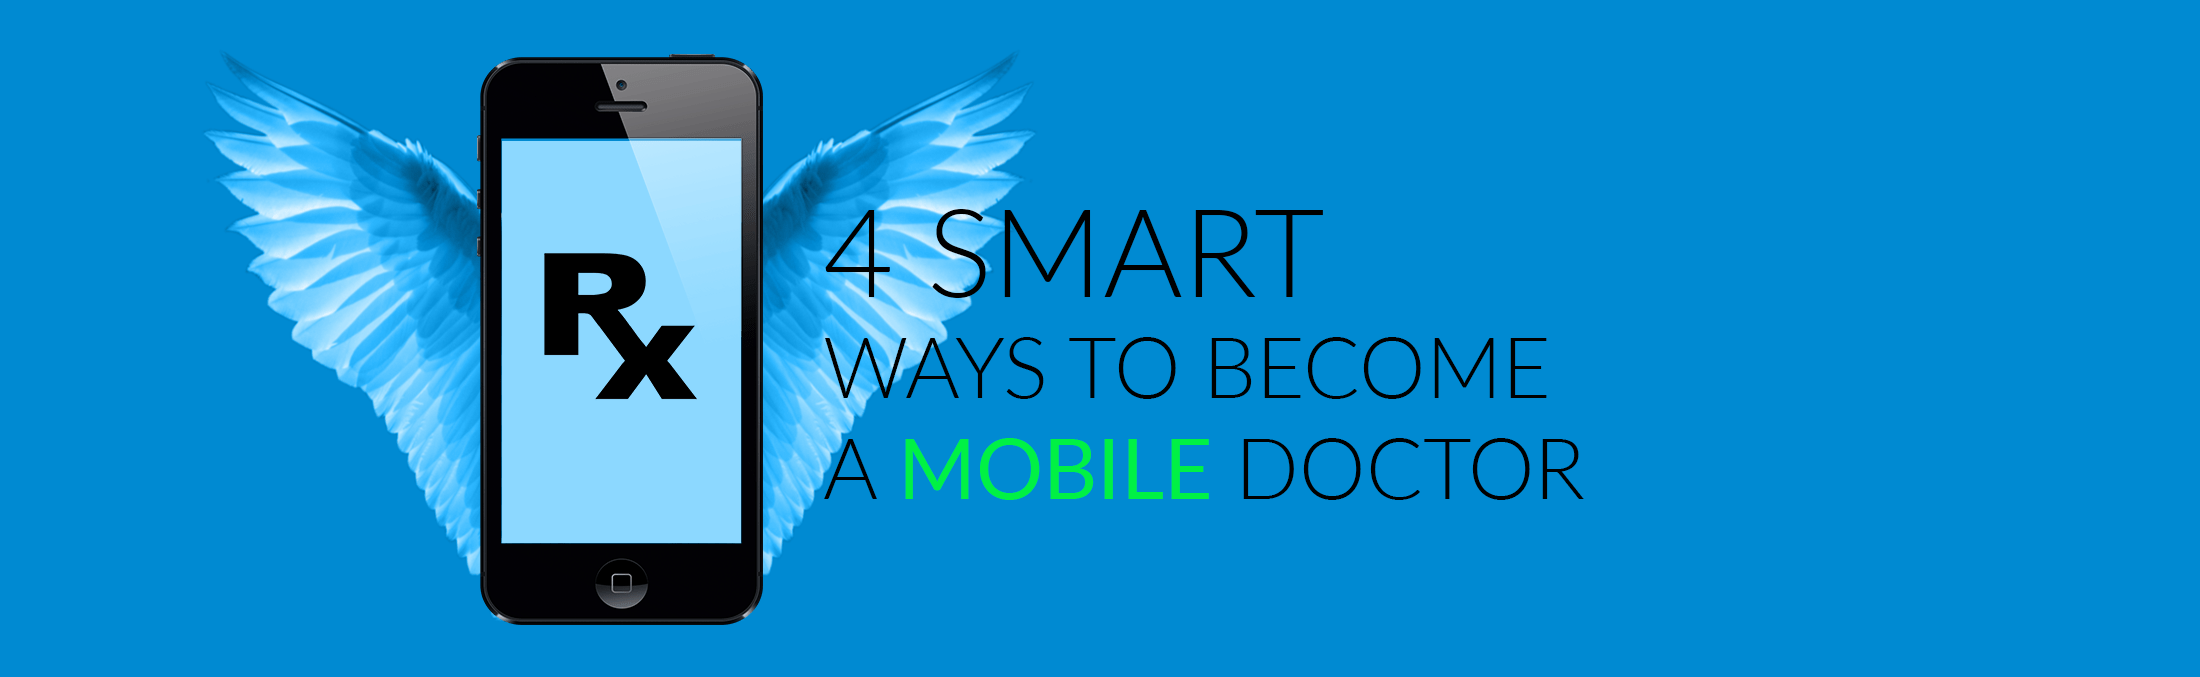 4 Ways to become a mobile doctor